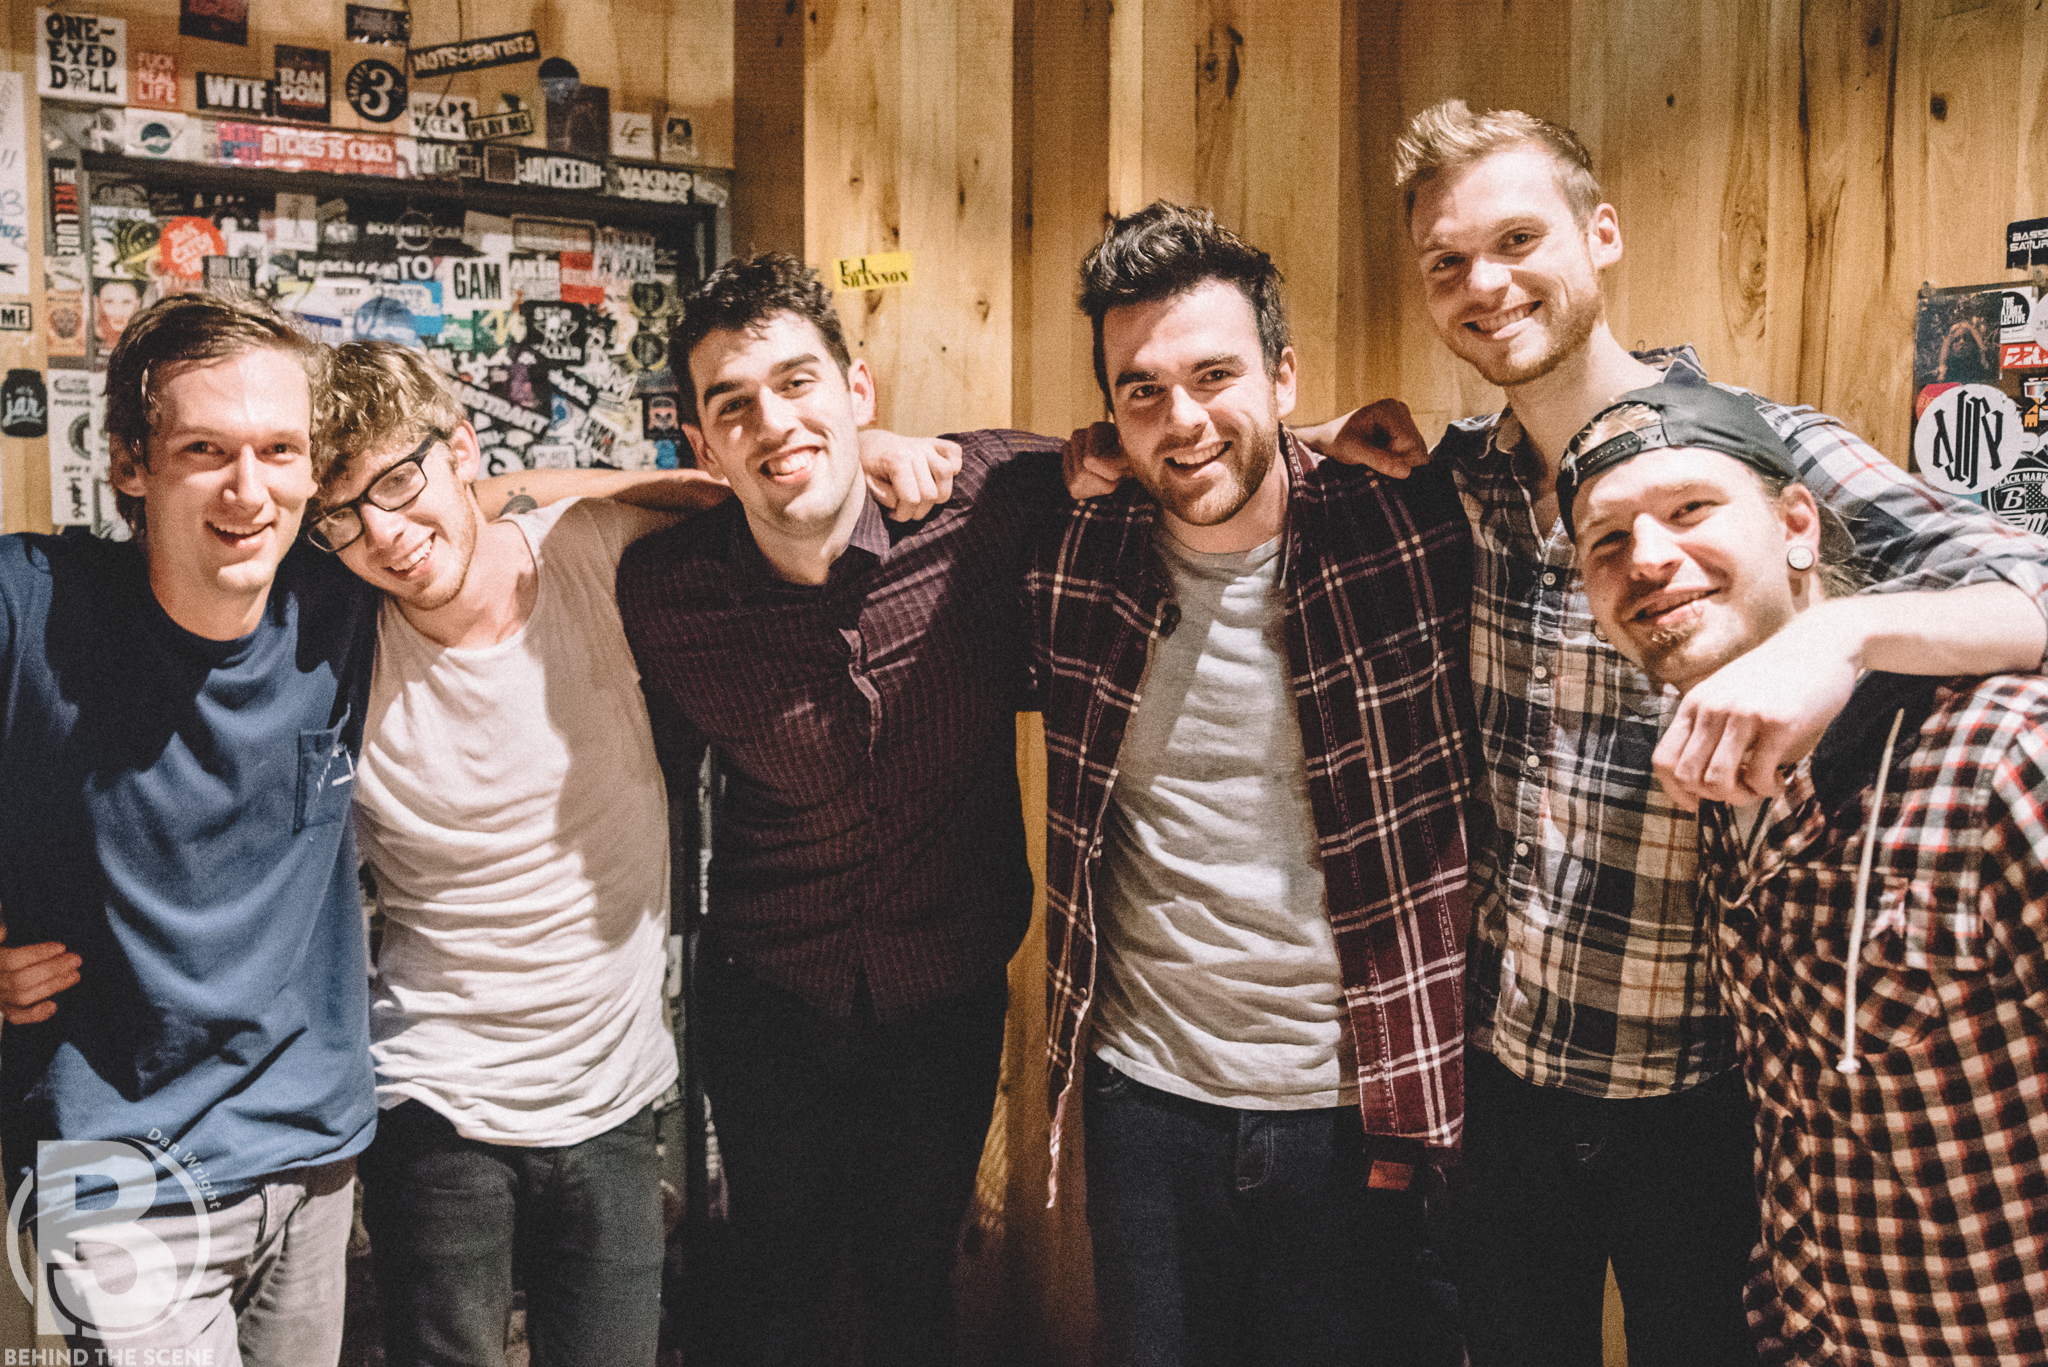 Paradise Fears, backstage following their album release show